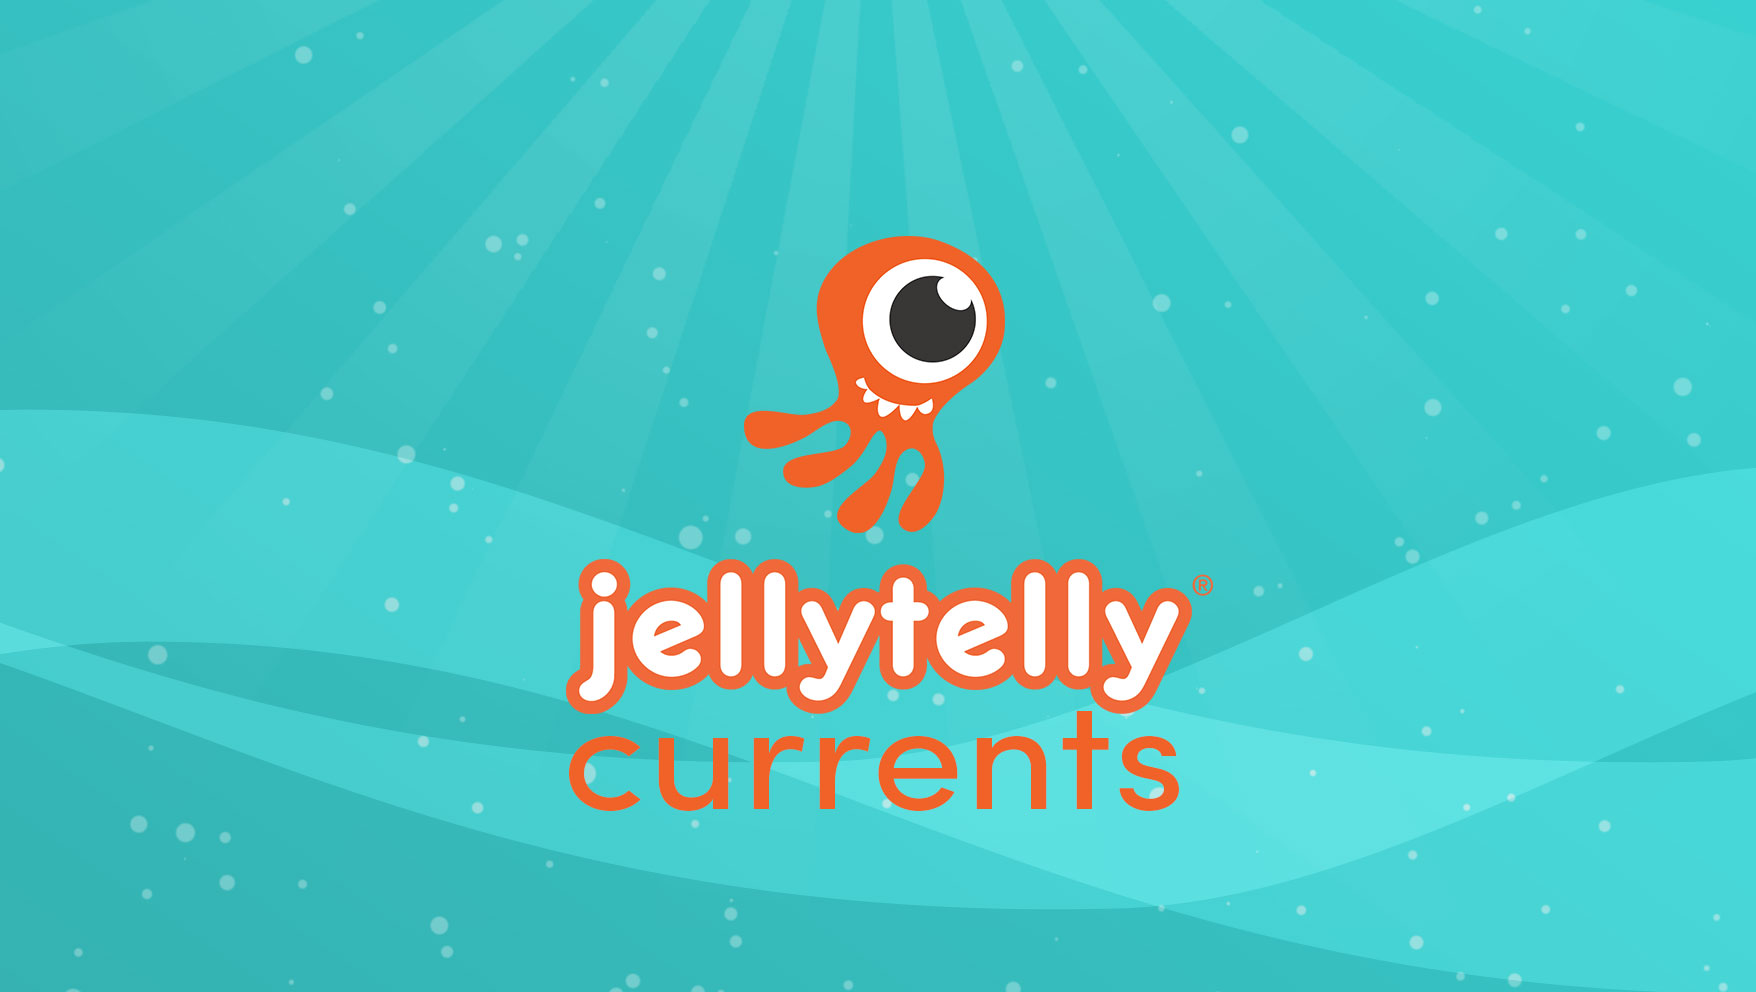 JellyTelly Currents 2/3/17